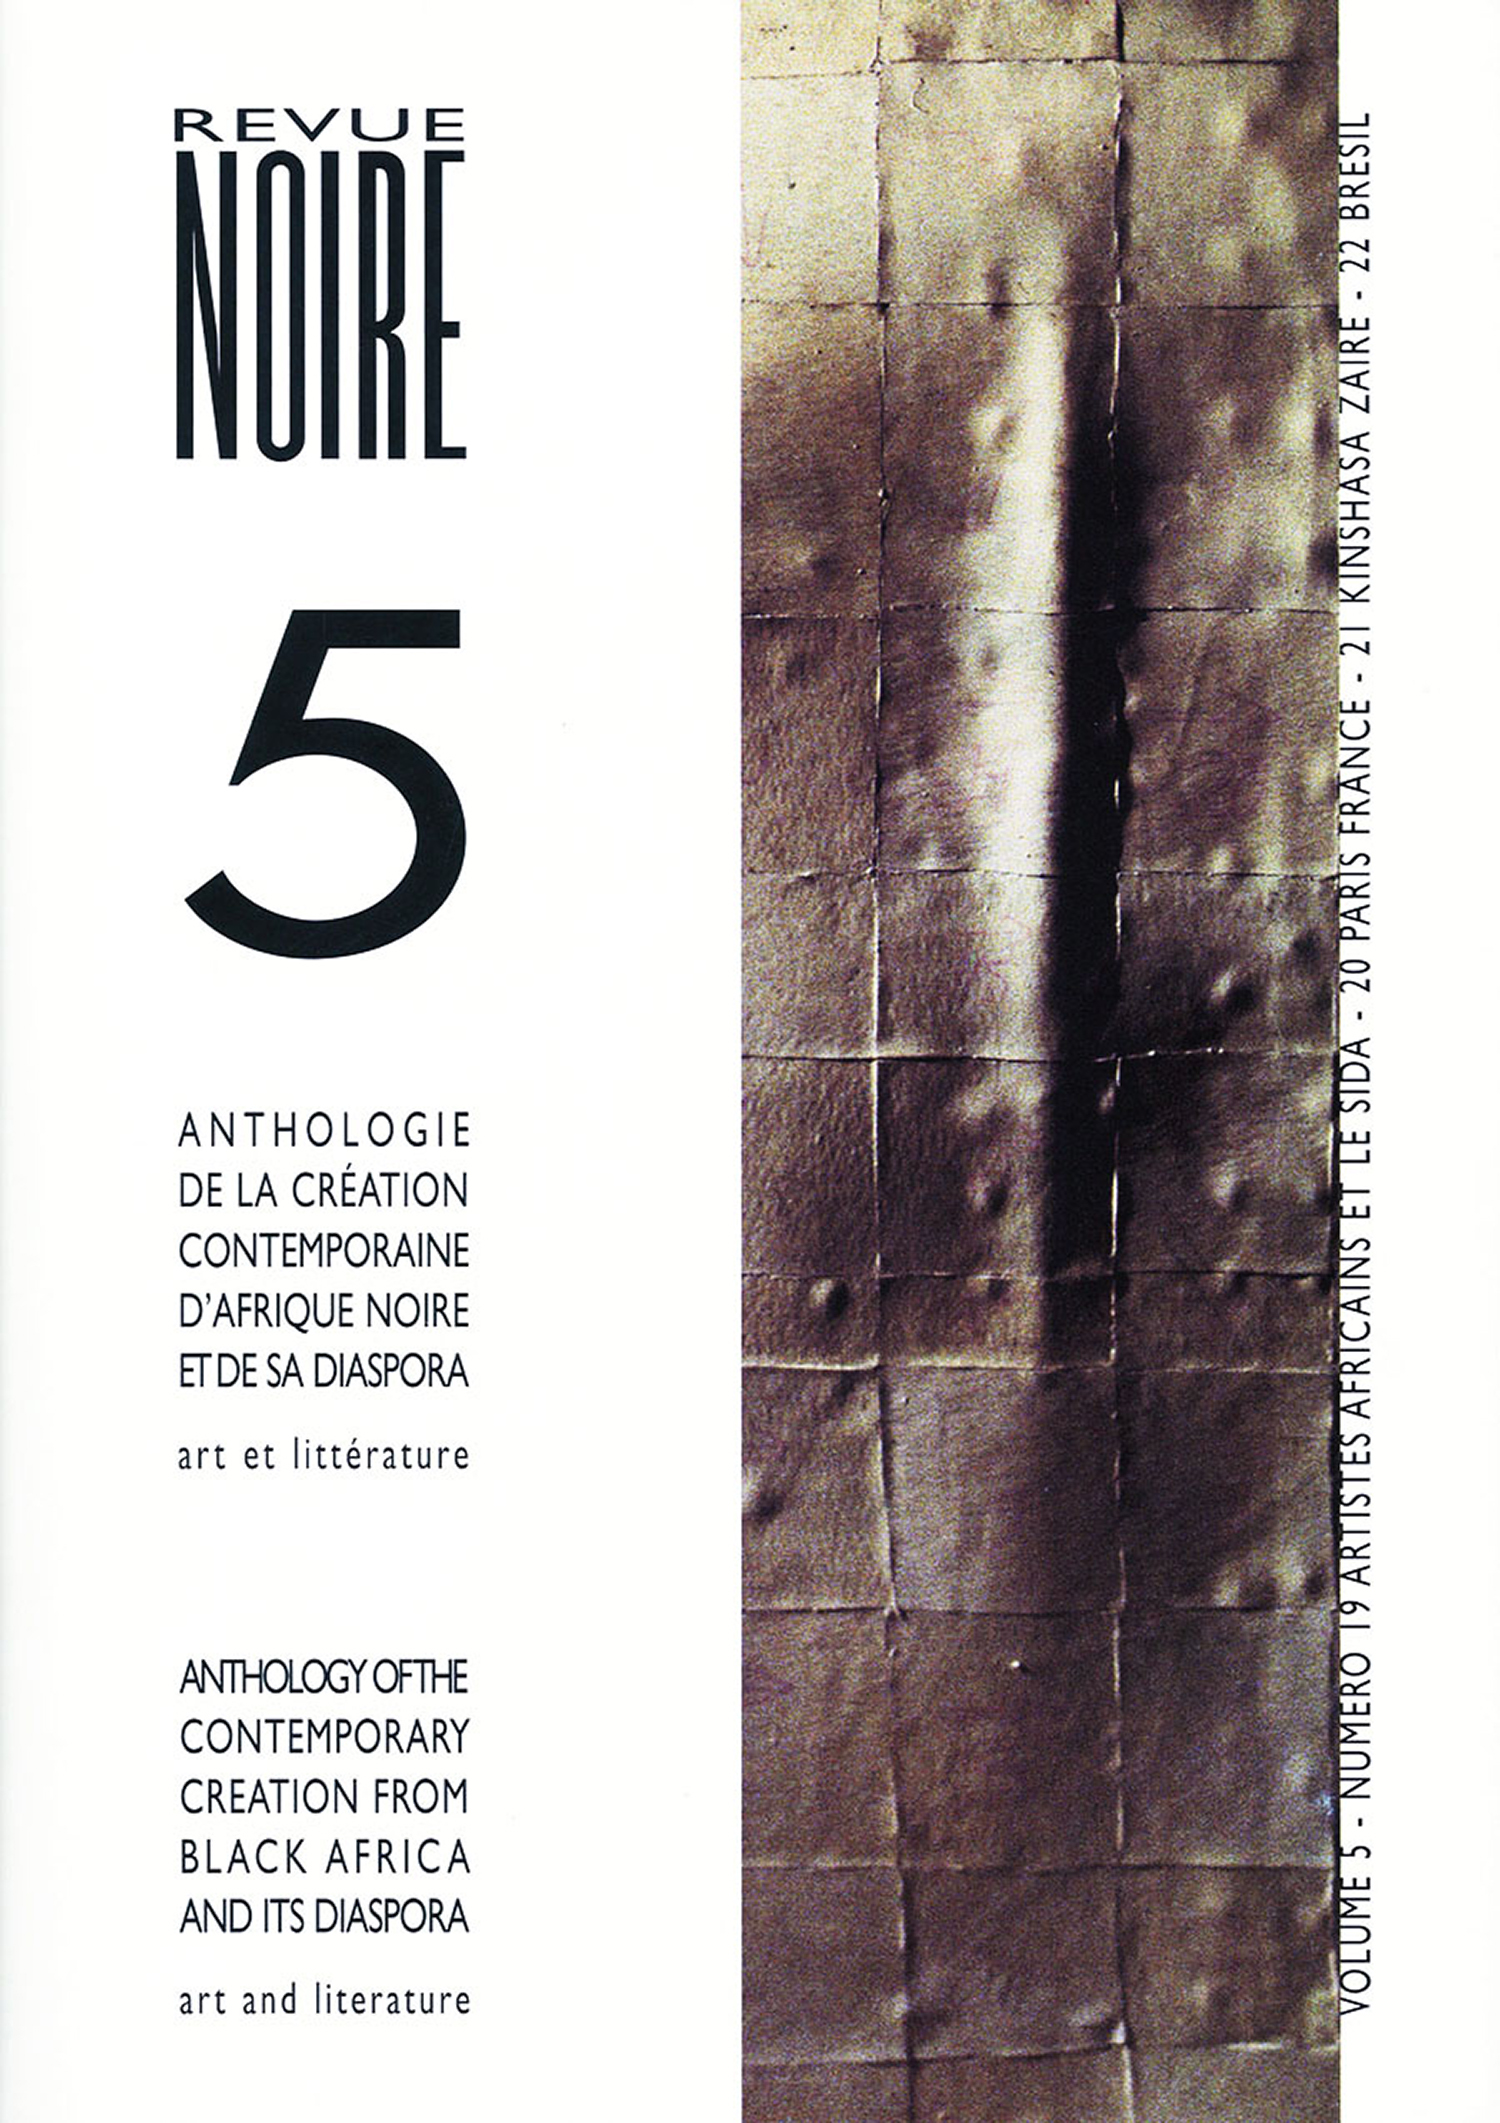 Book 'Anthology Revue Noire Magazine Vol. 05' N° 19 to 22